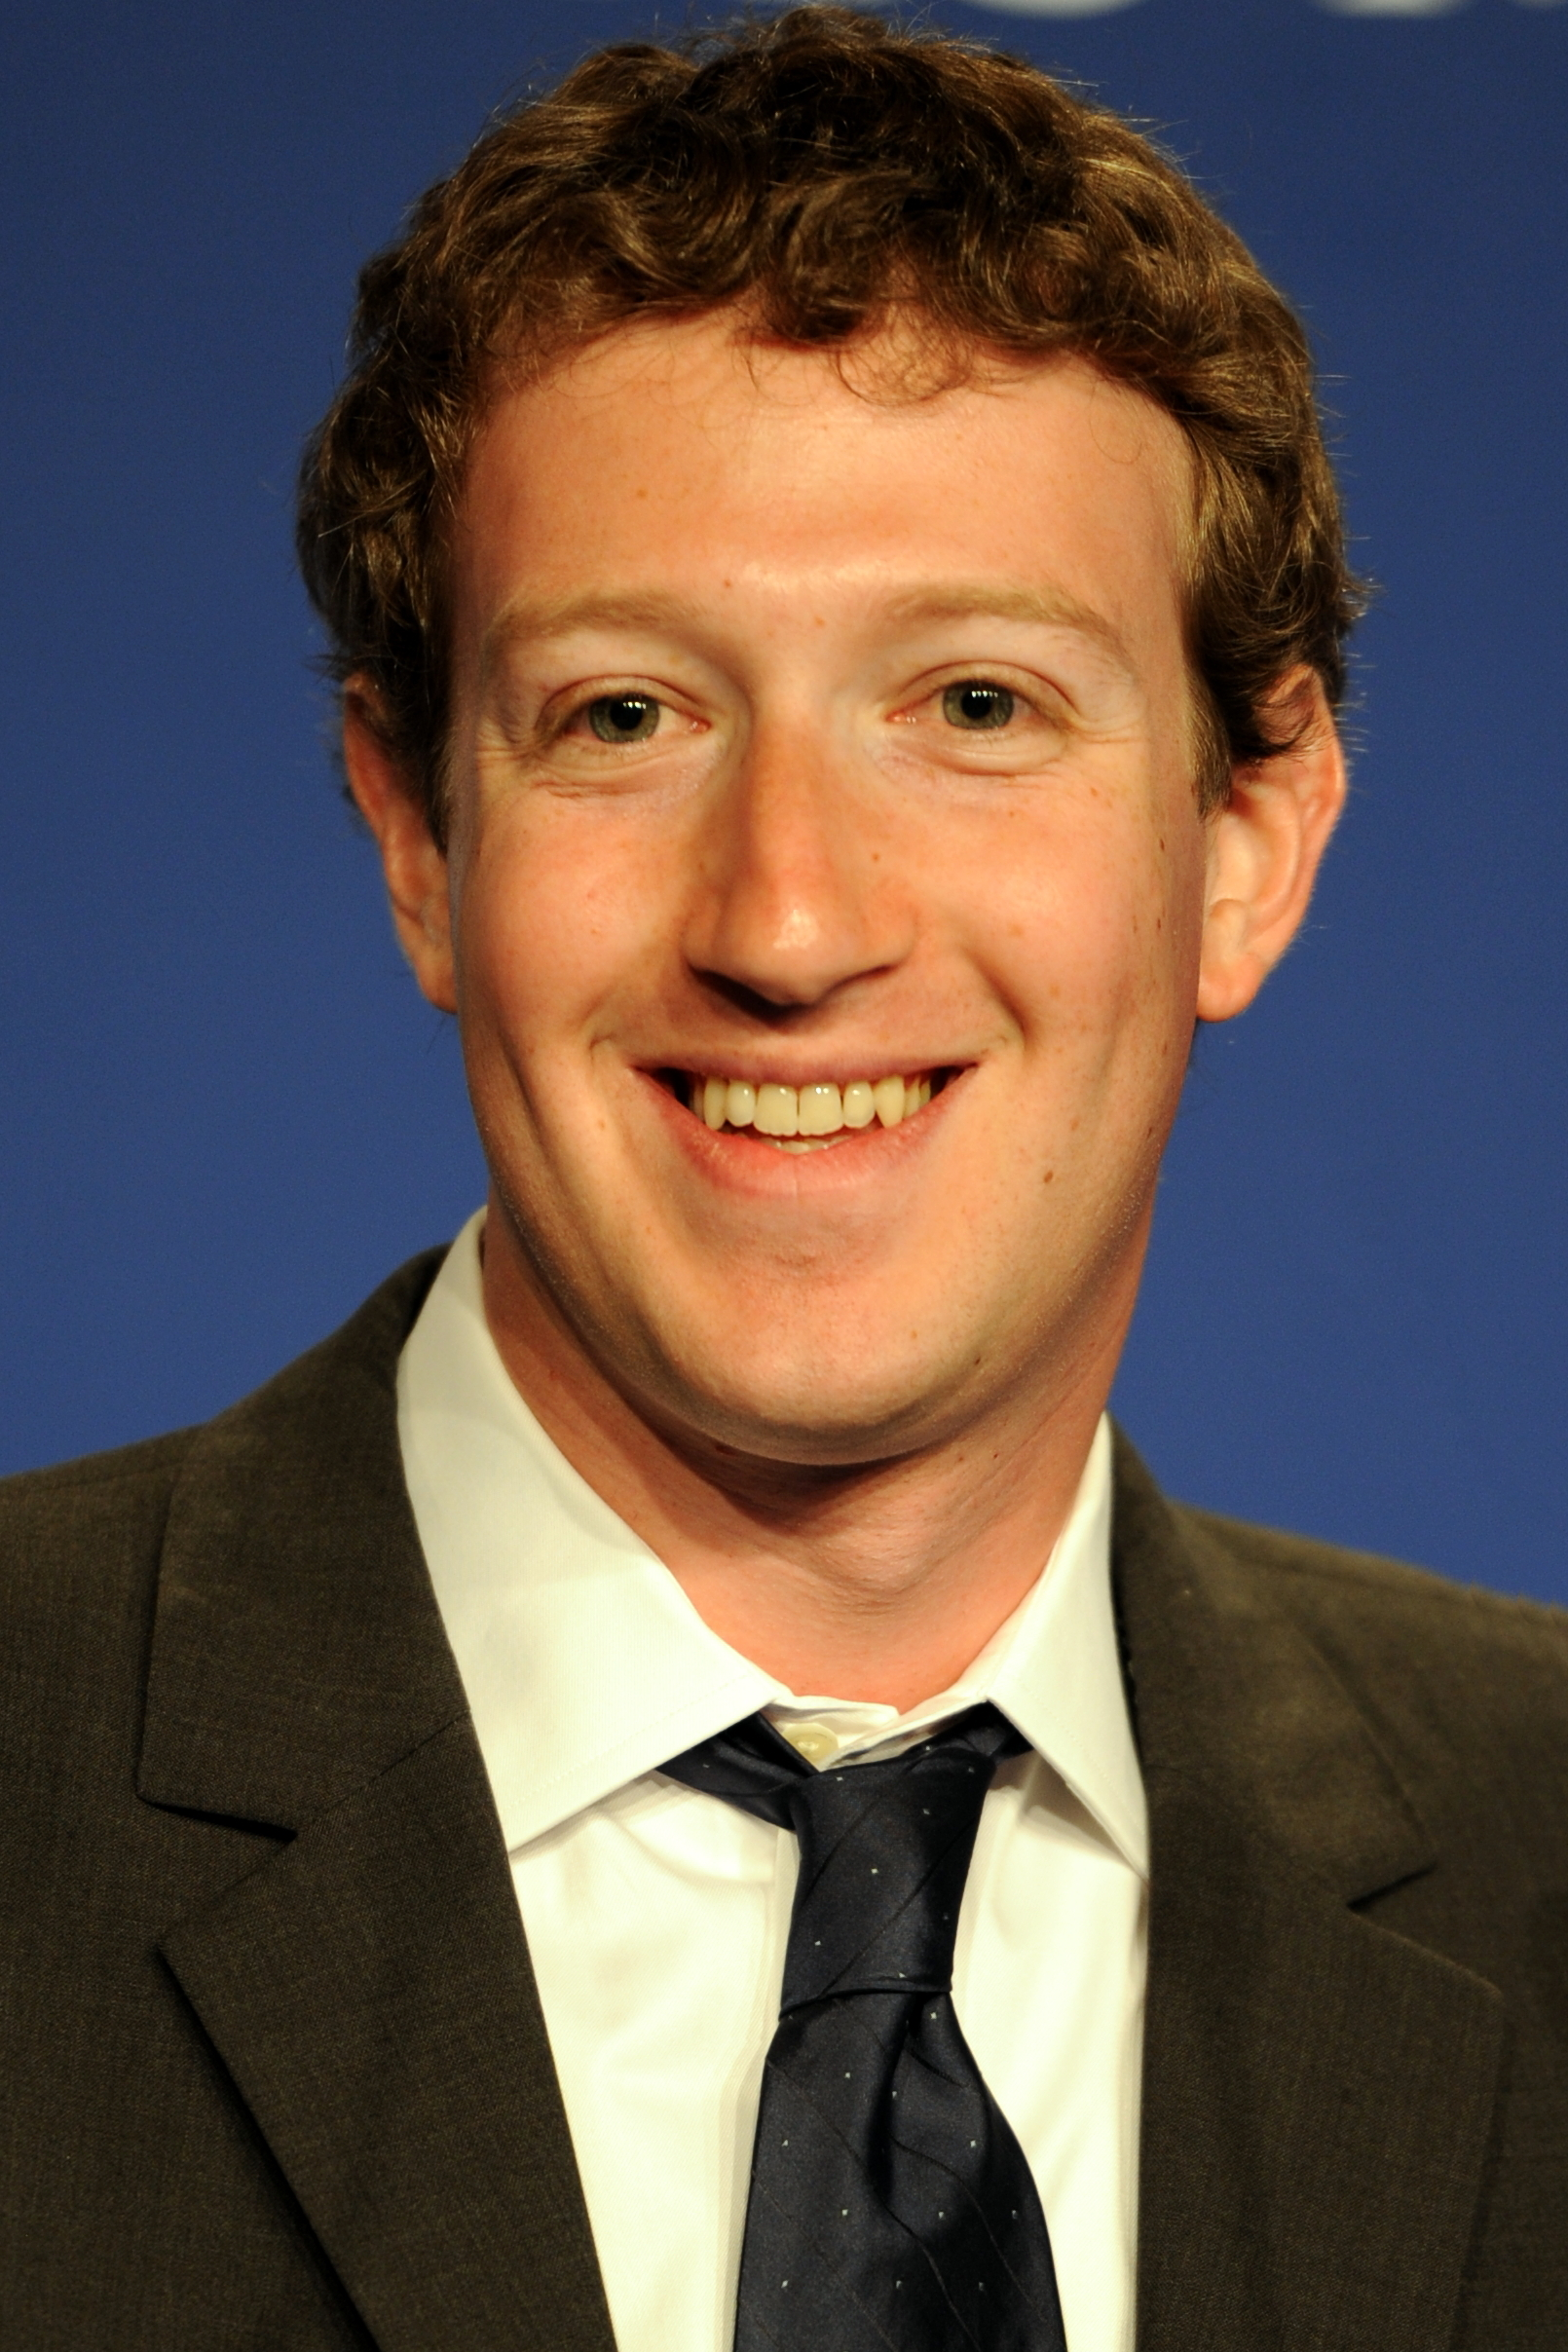 Description Mark Zuckerberg at the 37th G8 Summit in Deauville 018 v1 ...